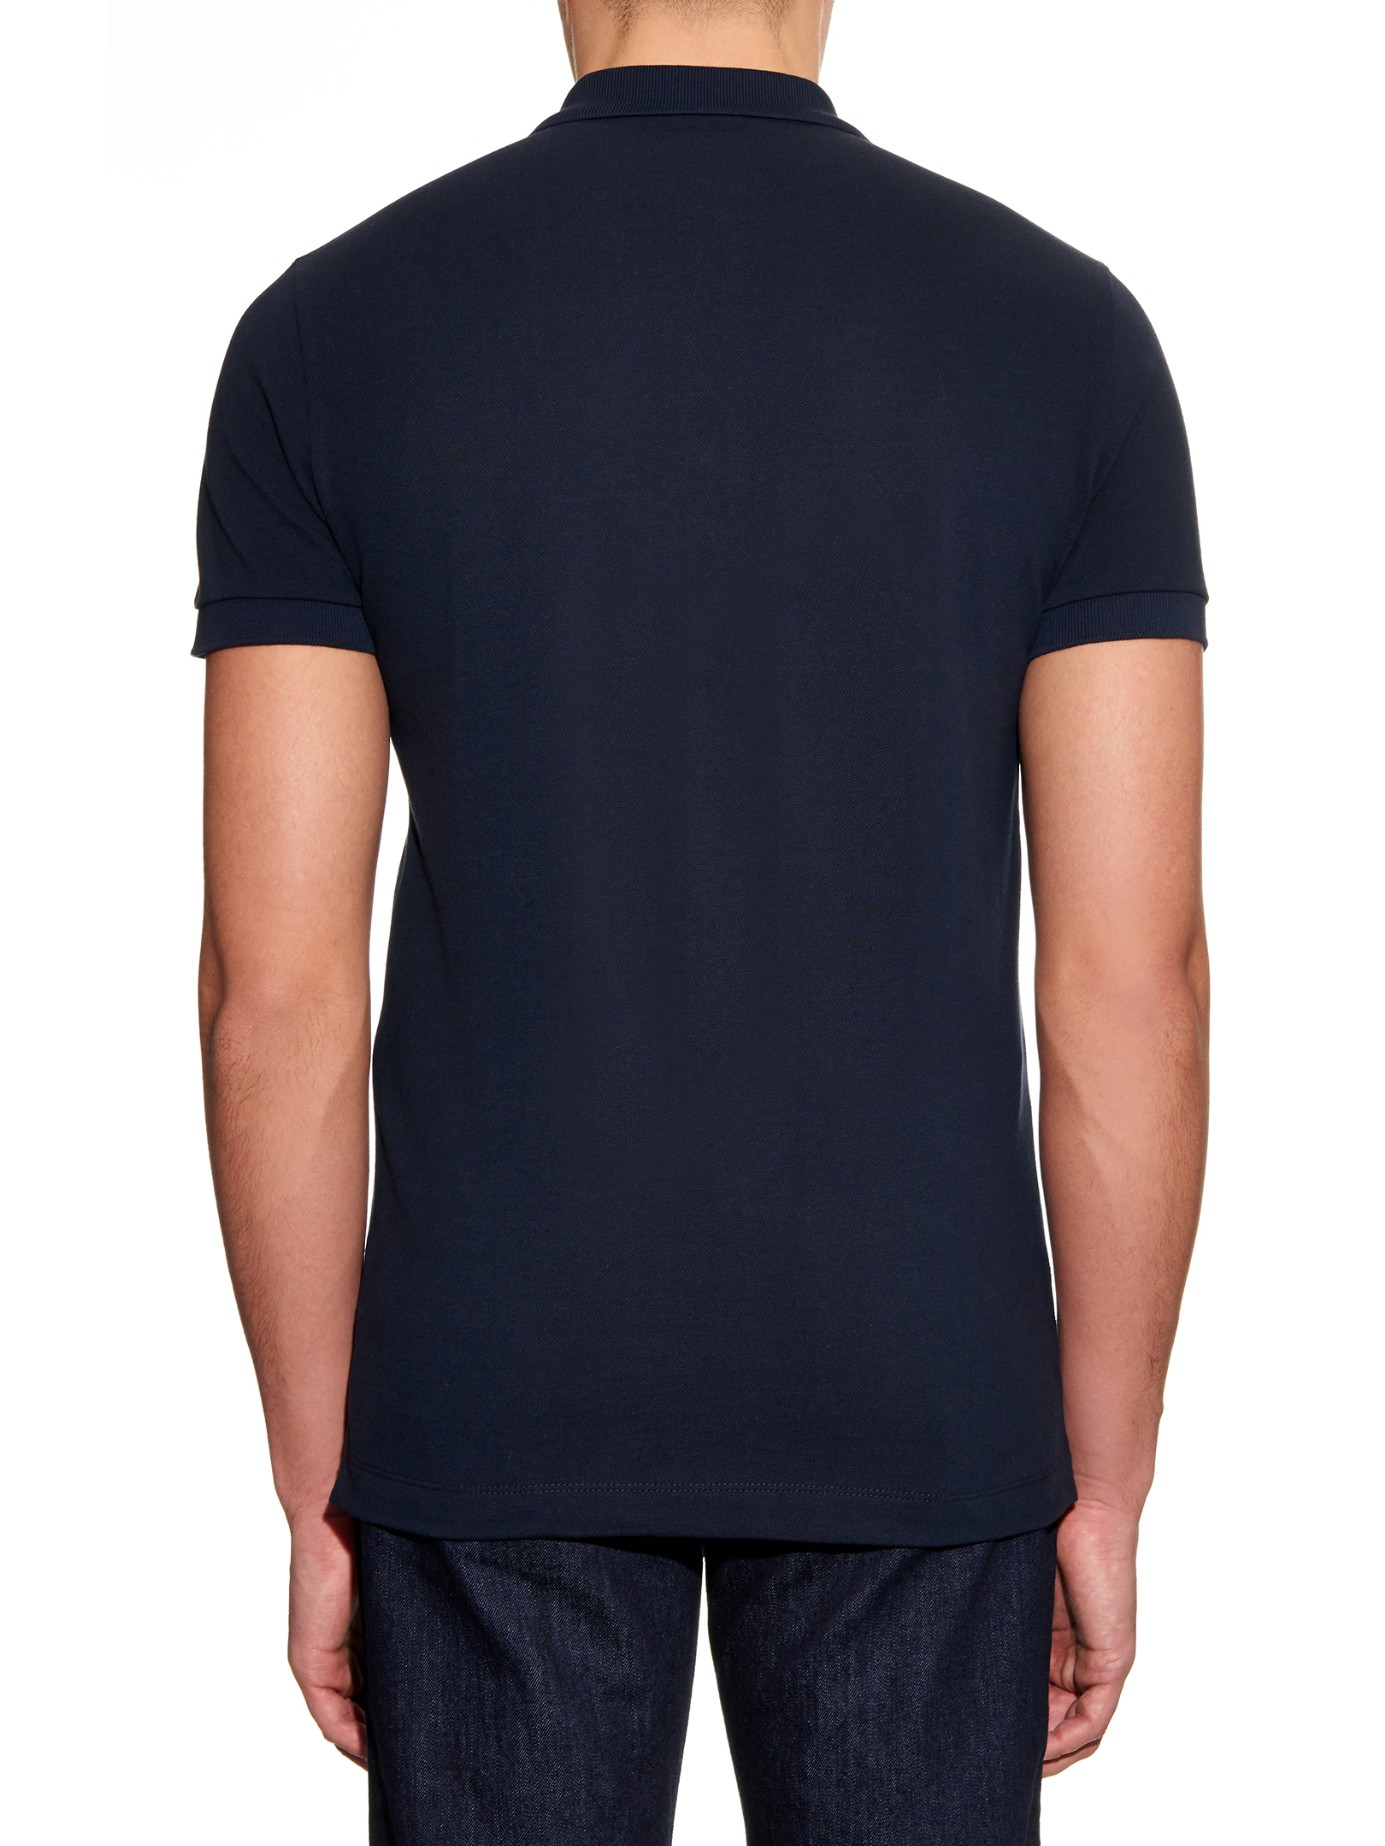 Bottega veneta cotton piqu polo shirt in blue for men lyst for Bottega veneta t shirt